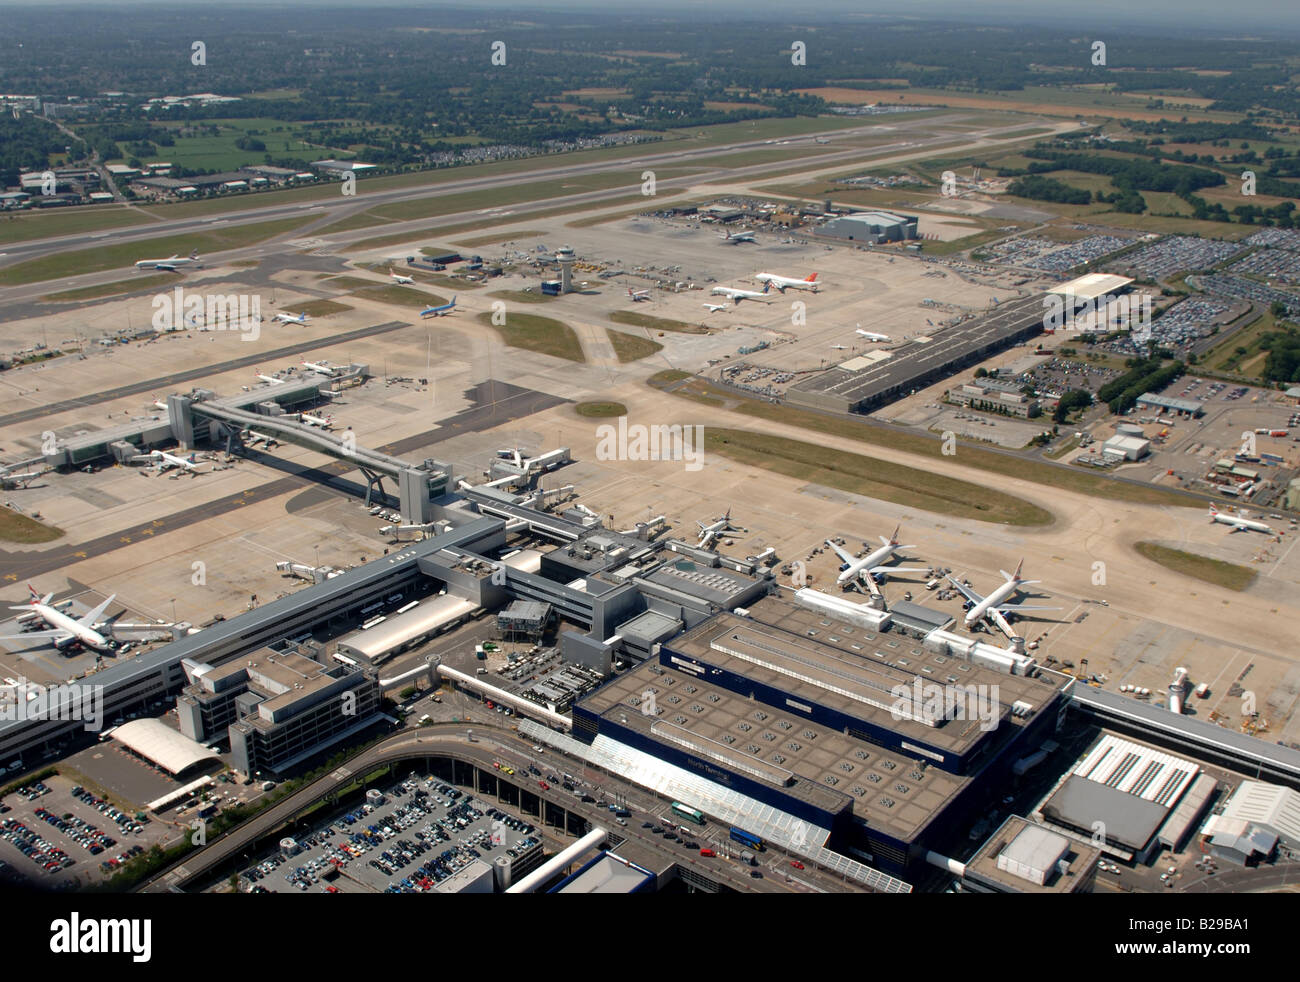 Gatwick Airport Date 12 03 2008 Ref ZB648 111149 0026 COMPULSORY CREDIT World Pictures Photoshot - Stock Image